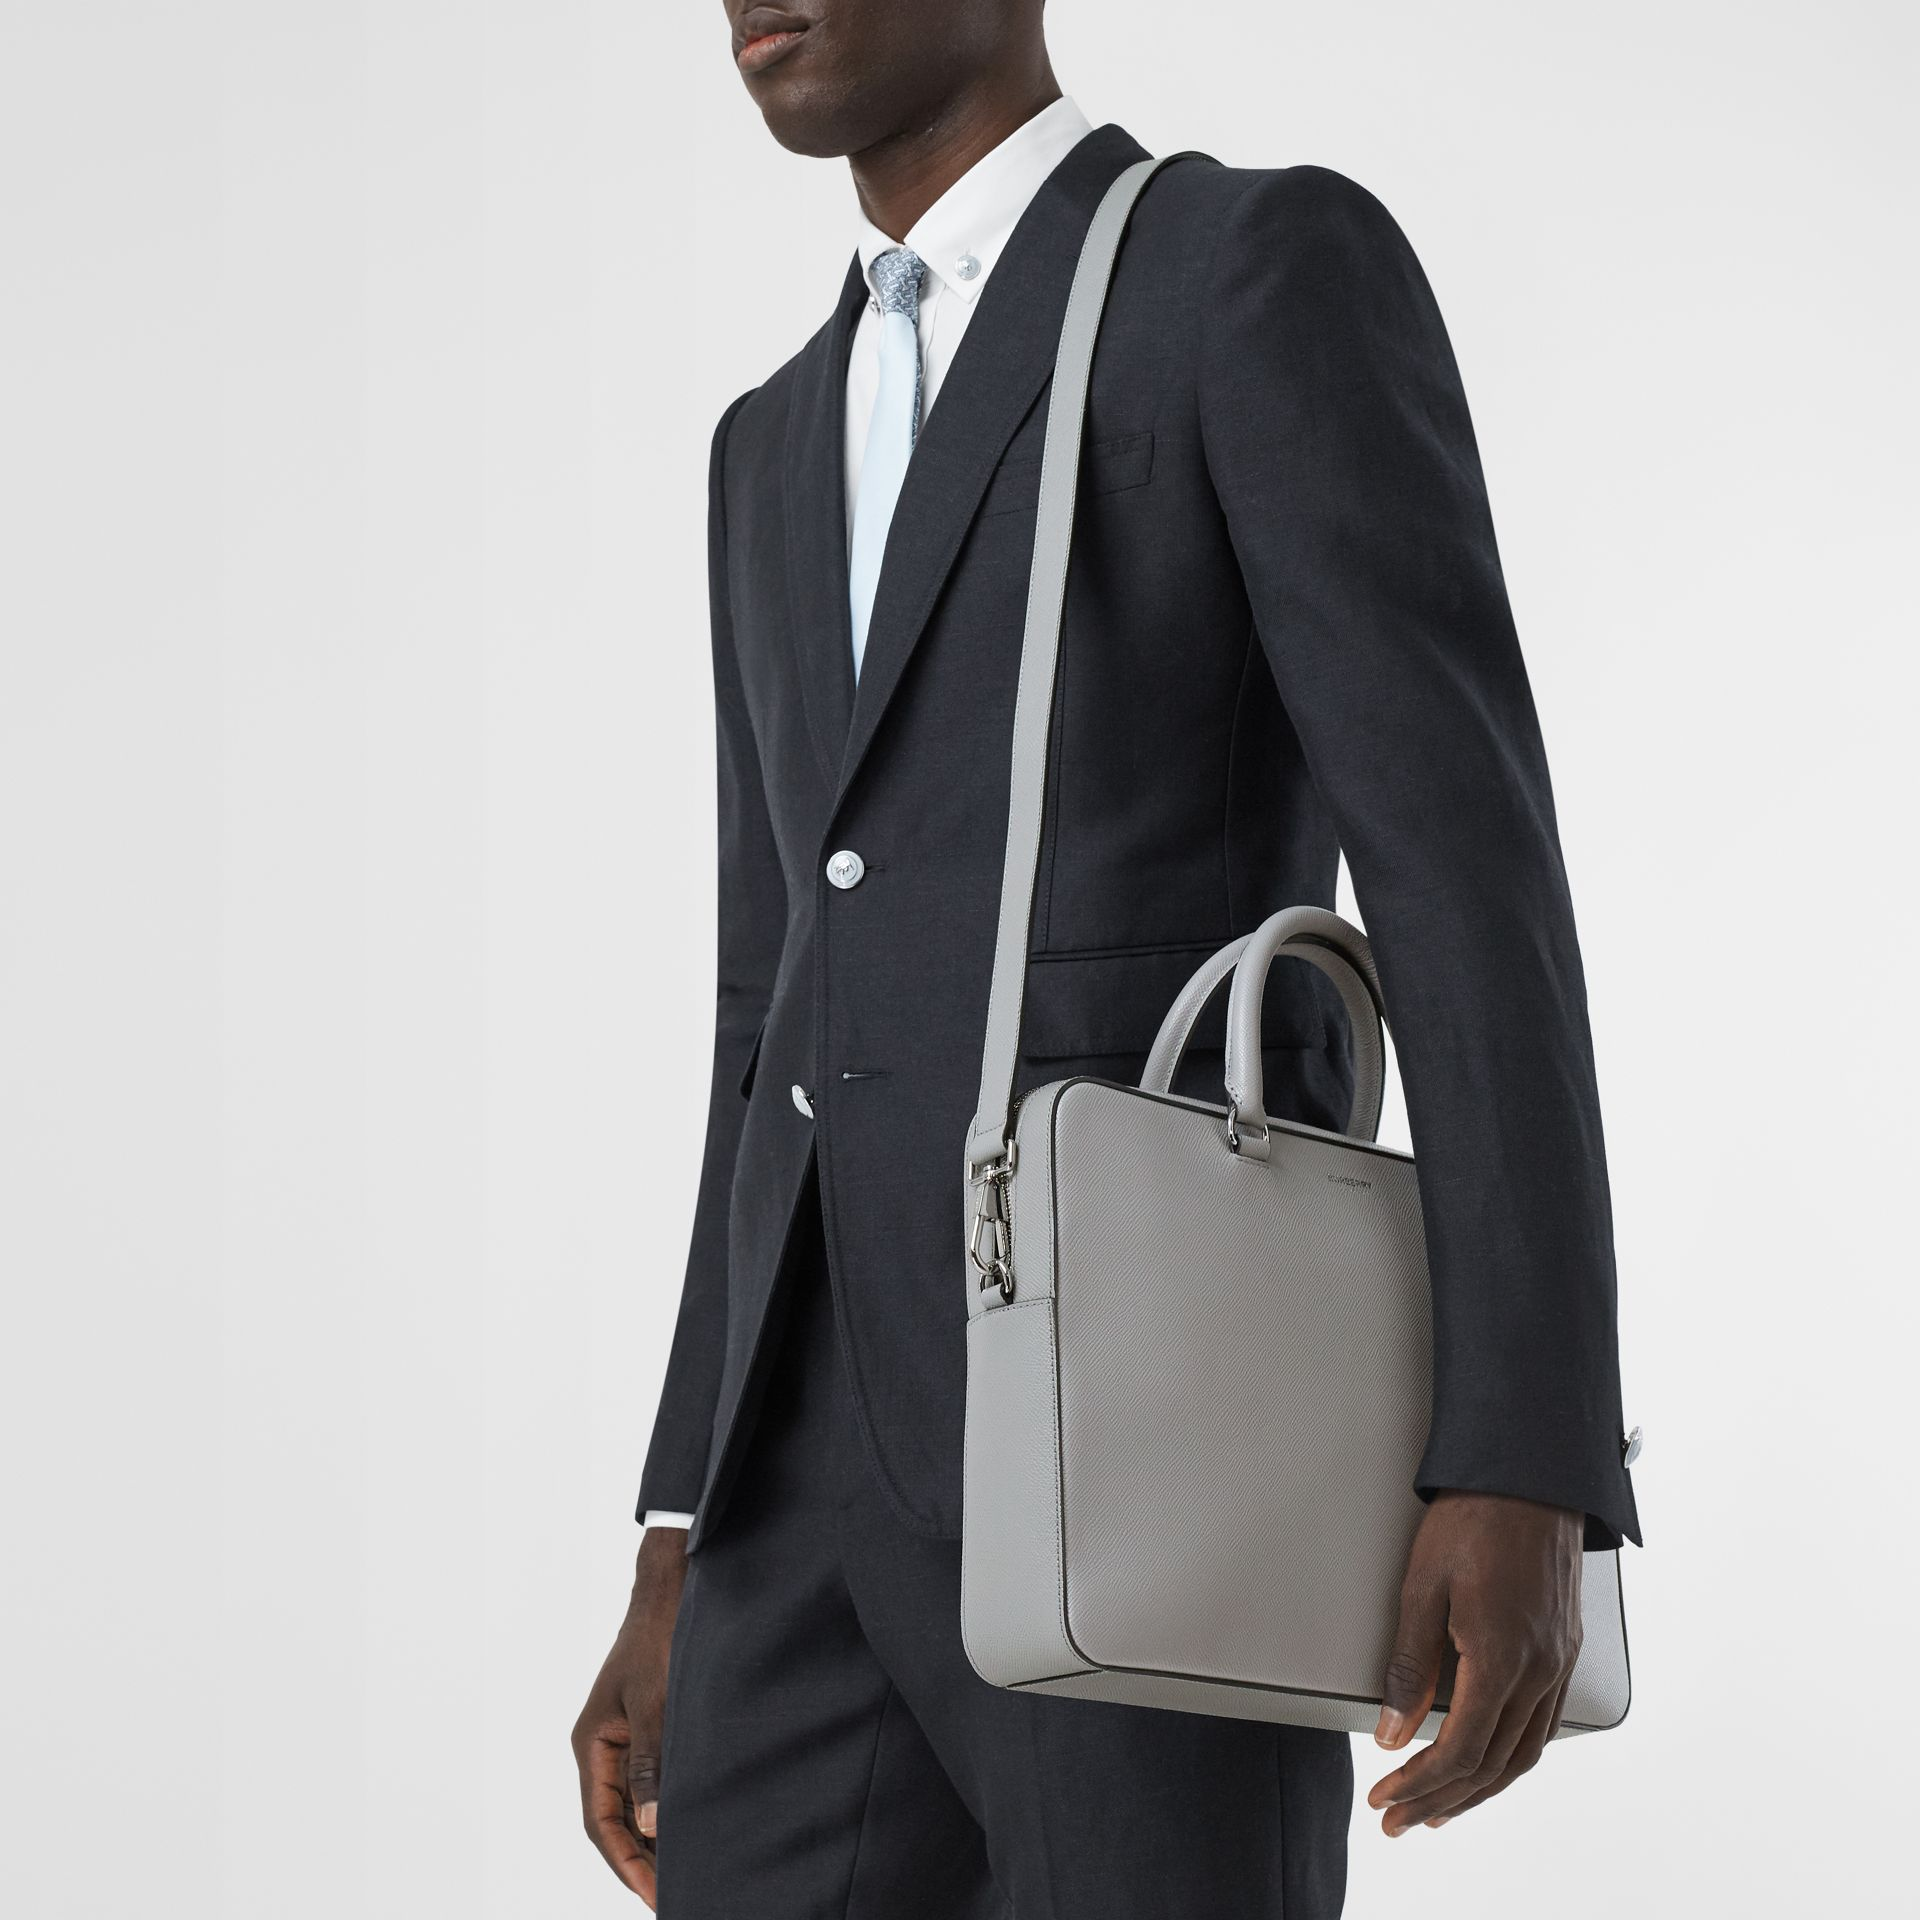 Grainy Leather Briefcase in Cloud Grey - Men | Burberry - gallery image 8